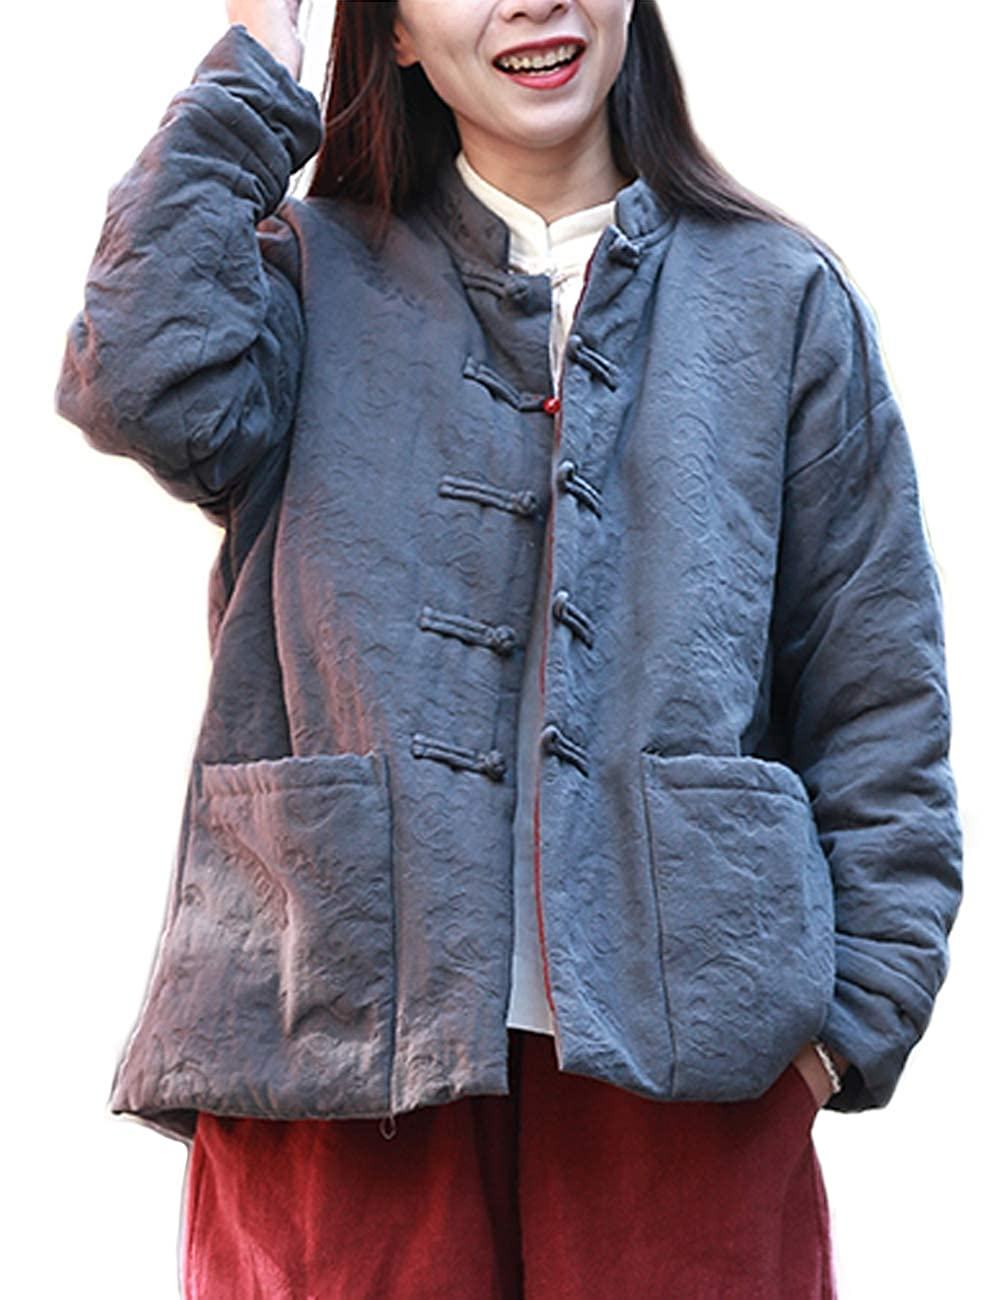 Women Pirate Chinese Tang Lightweight Gray Cotton Linen Quilted Lined Jacket - DeluxeAdultCostumes.com